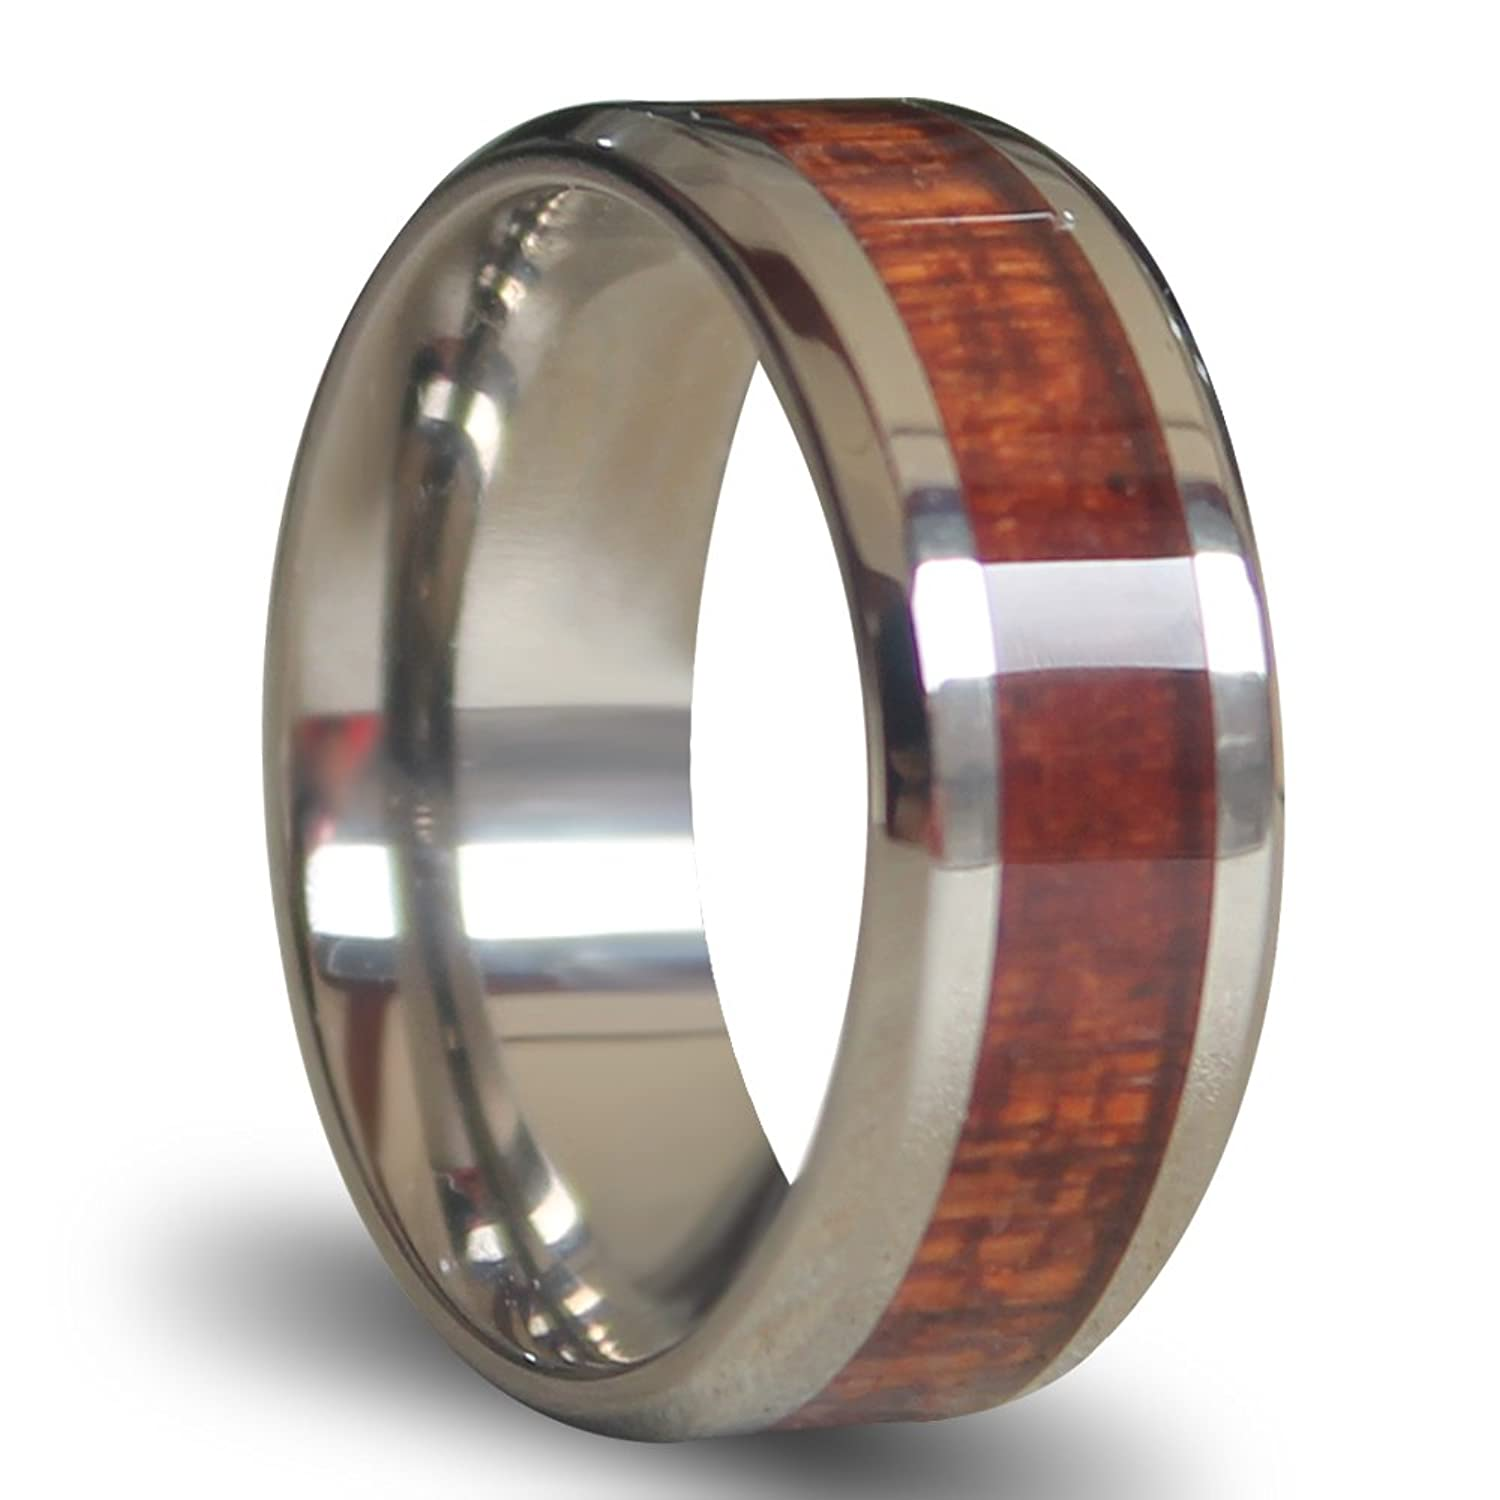 Will Queen Titanium Ring Inlaid with Wood 8mm Wide fort Fit